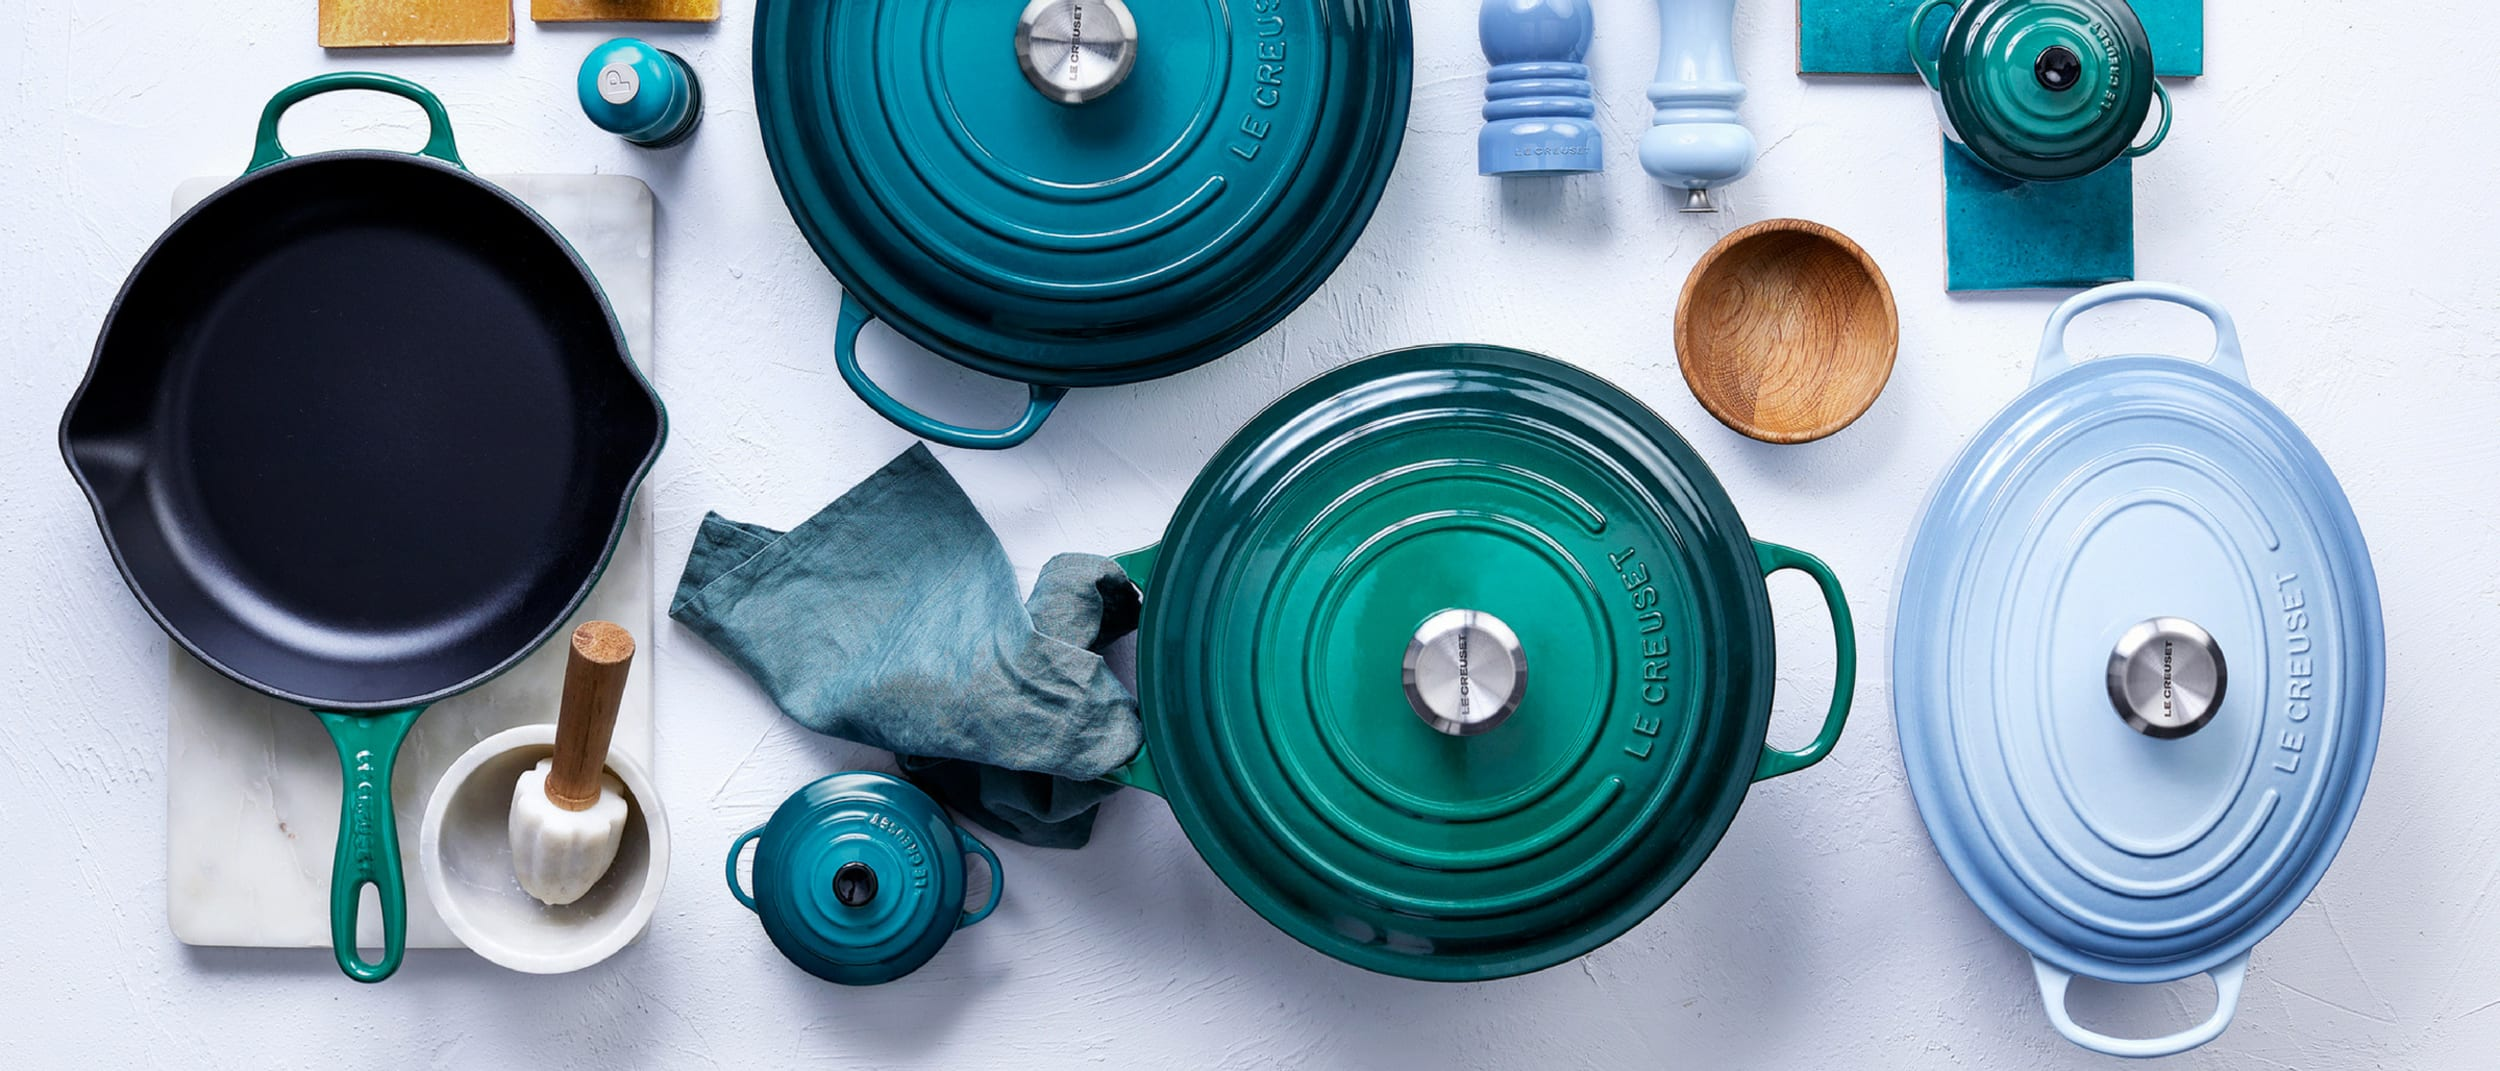 Le Creuset: October promotions